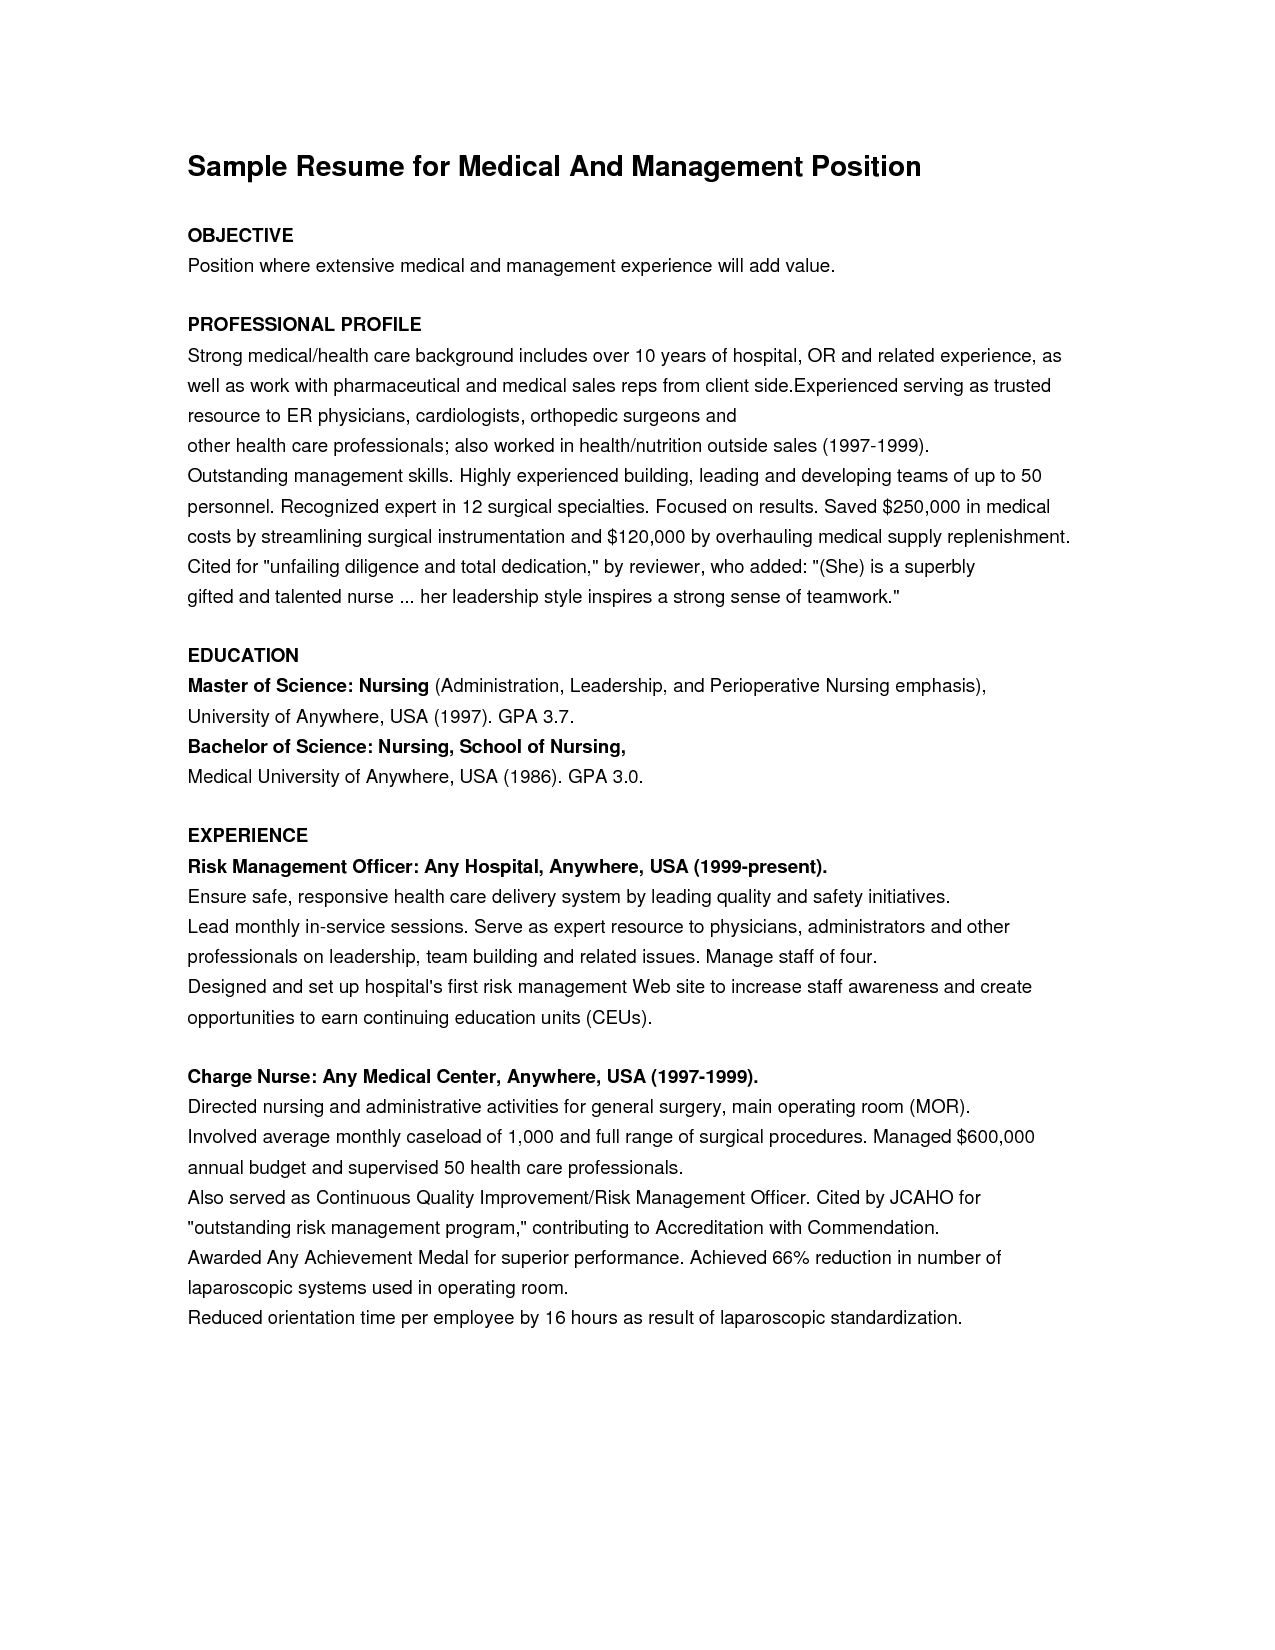 Sample Resume For Management Position  Resume Sample